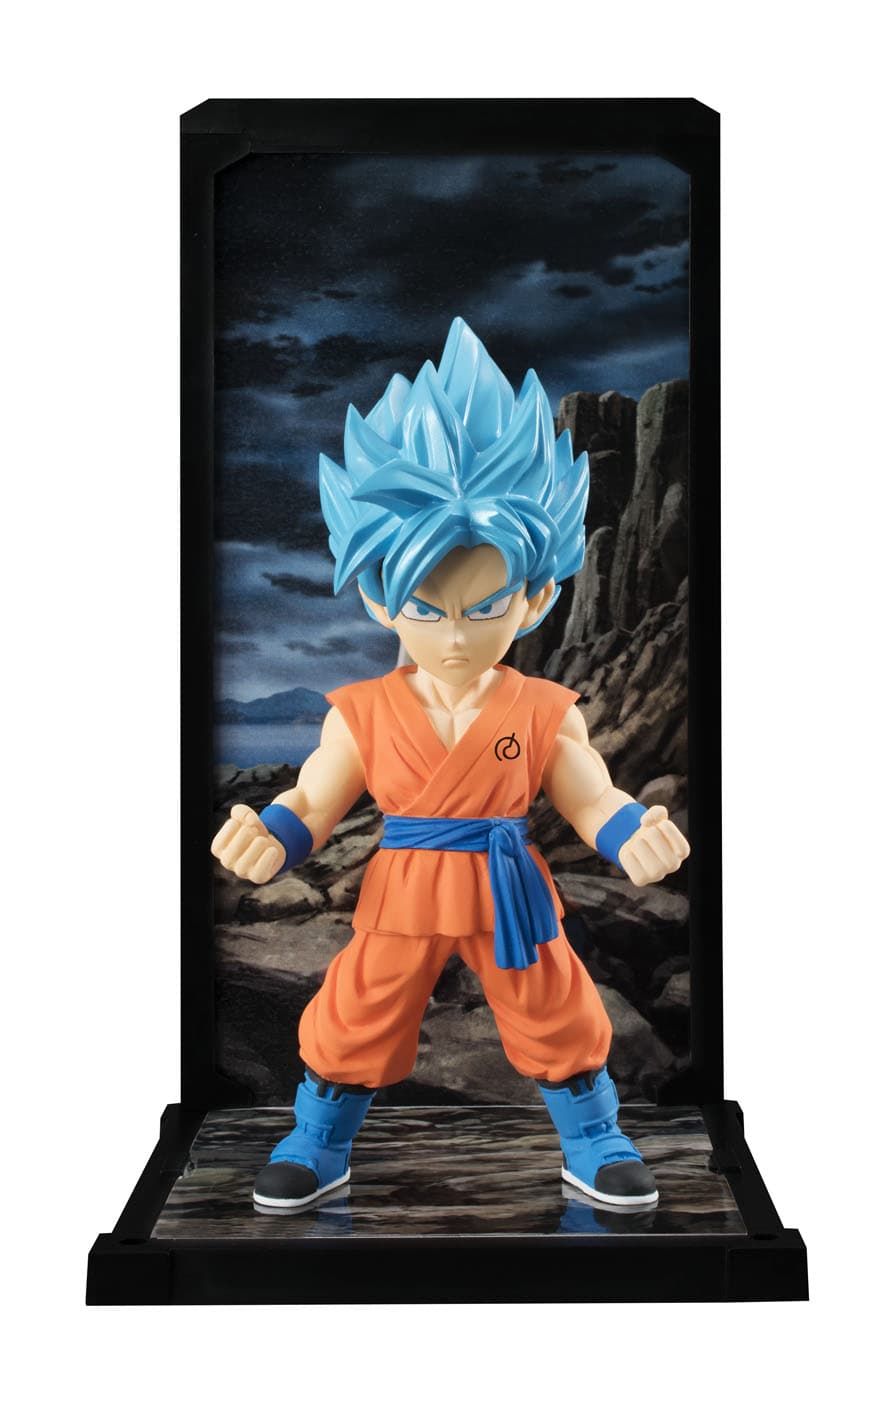 SSGSS SON GOKU FIGURA 9 CM DRAGON BALL SUPER TAMASHII BUDDIES